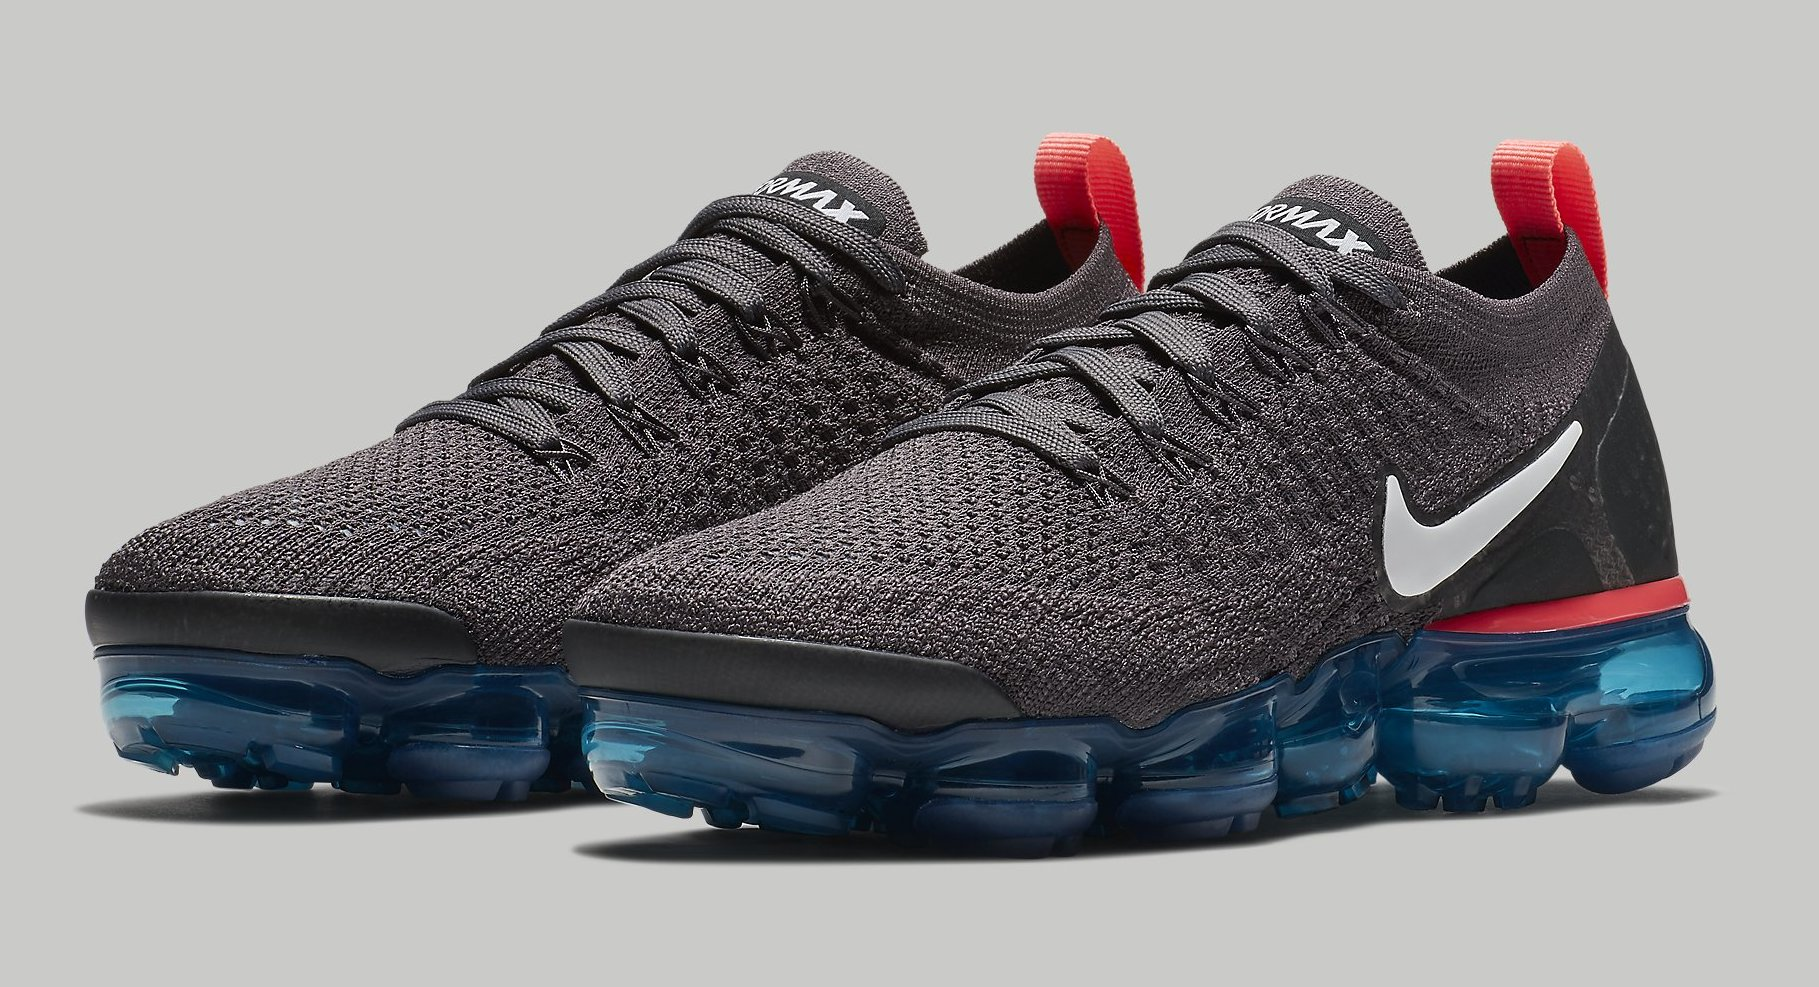 0c8dd2aa081 Nike Air VaporMax 2 Flyknit  Thunder Grey  Release Date Aug. 2018 ...